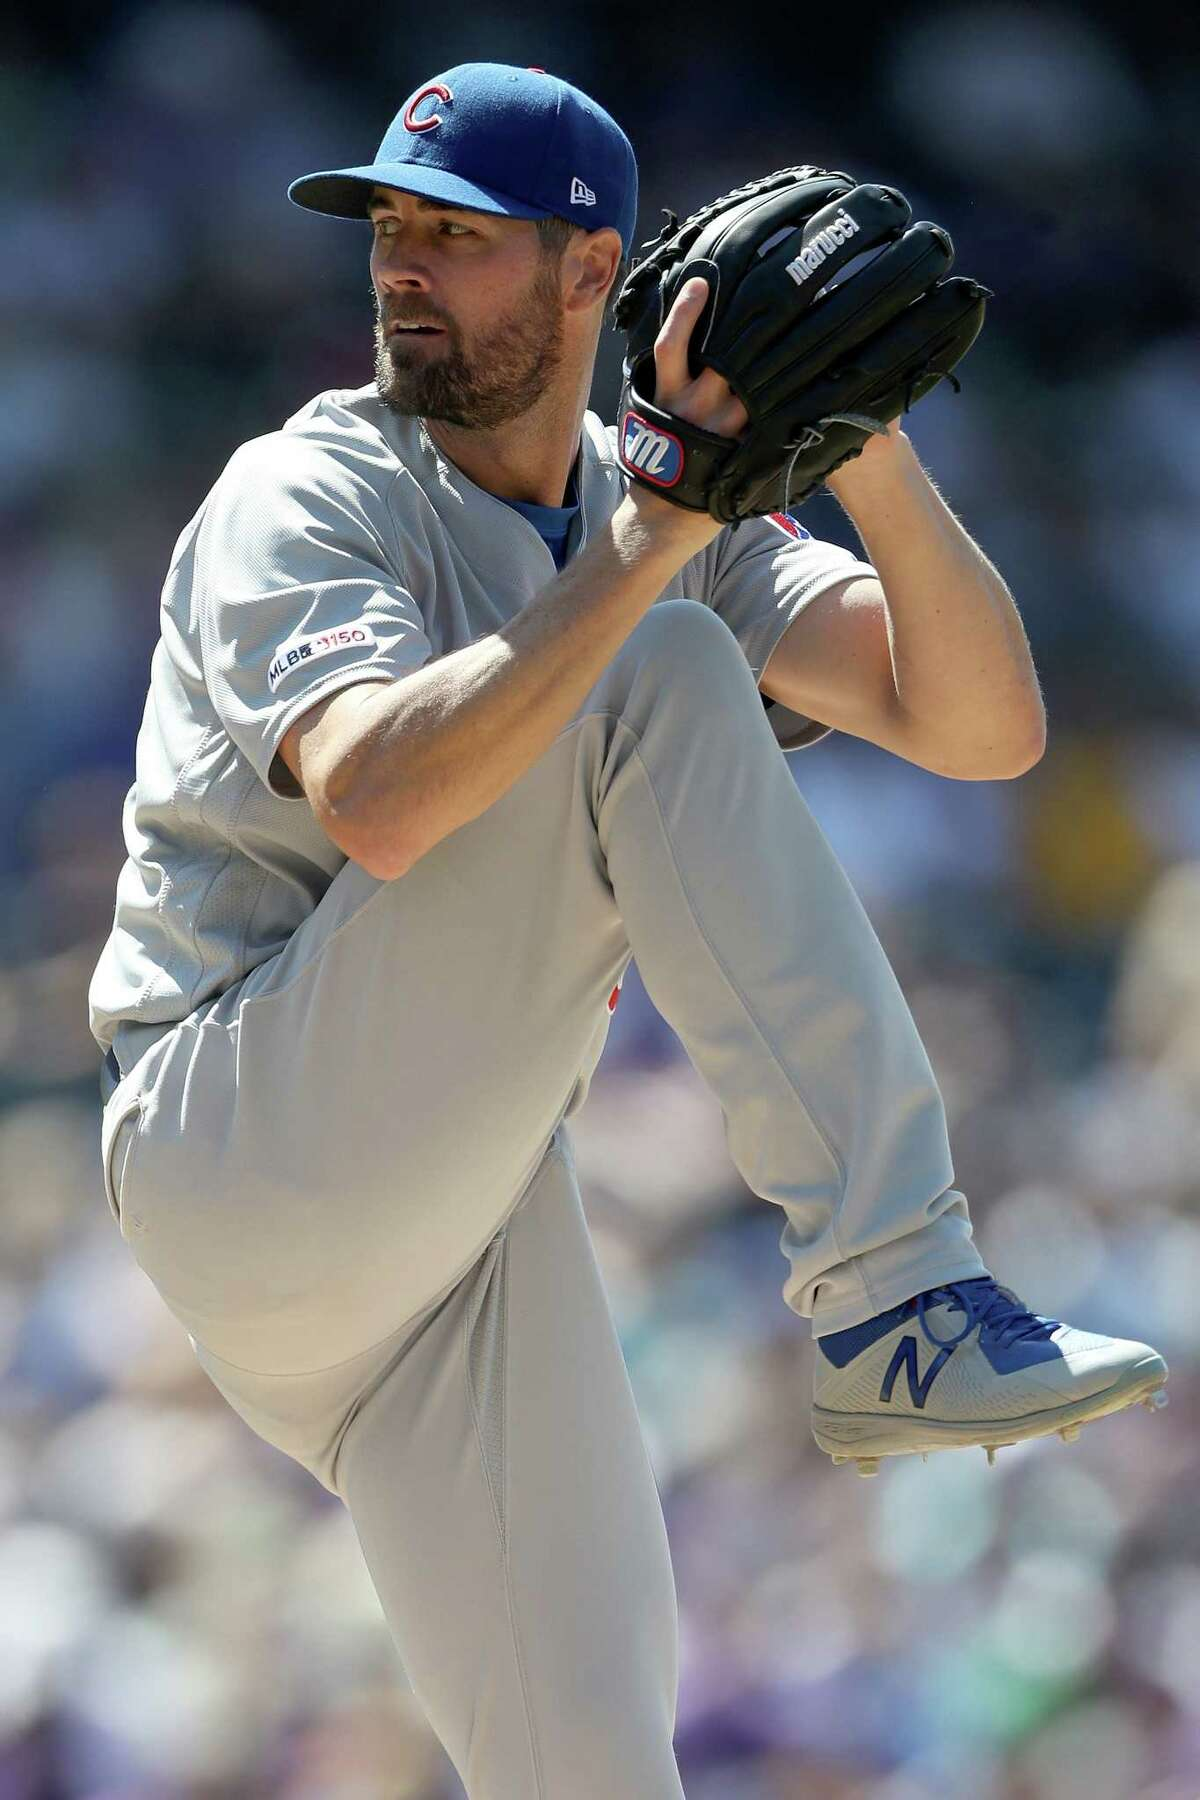 DENVER, COLORADO - JUNE 12: Starting pitcher Cole Hamels #35 of the Chicago Cubs throws in the seventh inning against the Colorado Rockies at Coors Field on June 12, 2019 in Denver, Colorado. (Photo by Matthew Stockman/Getty Images)